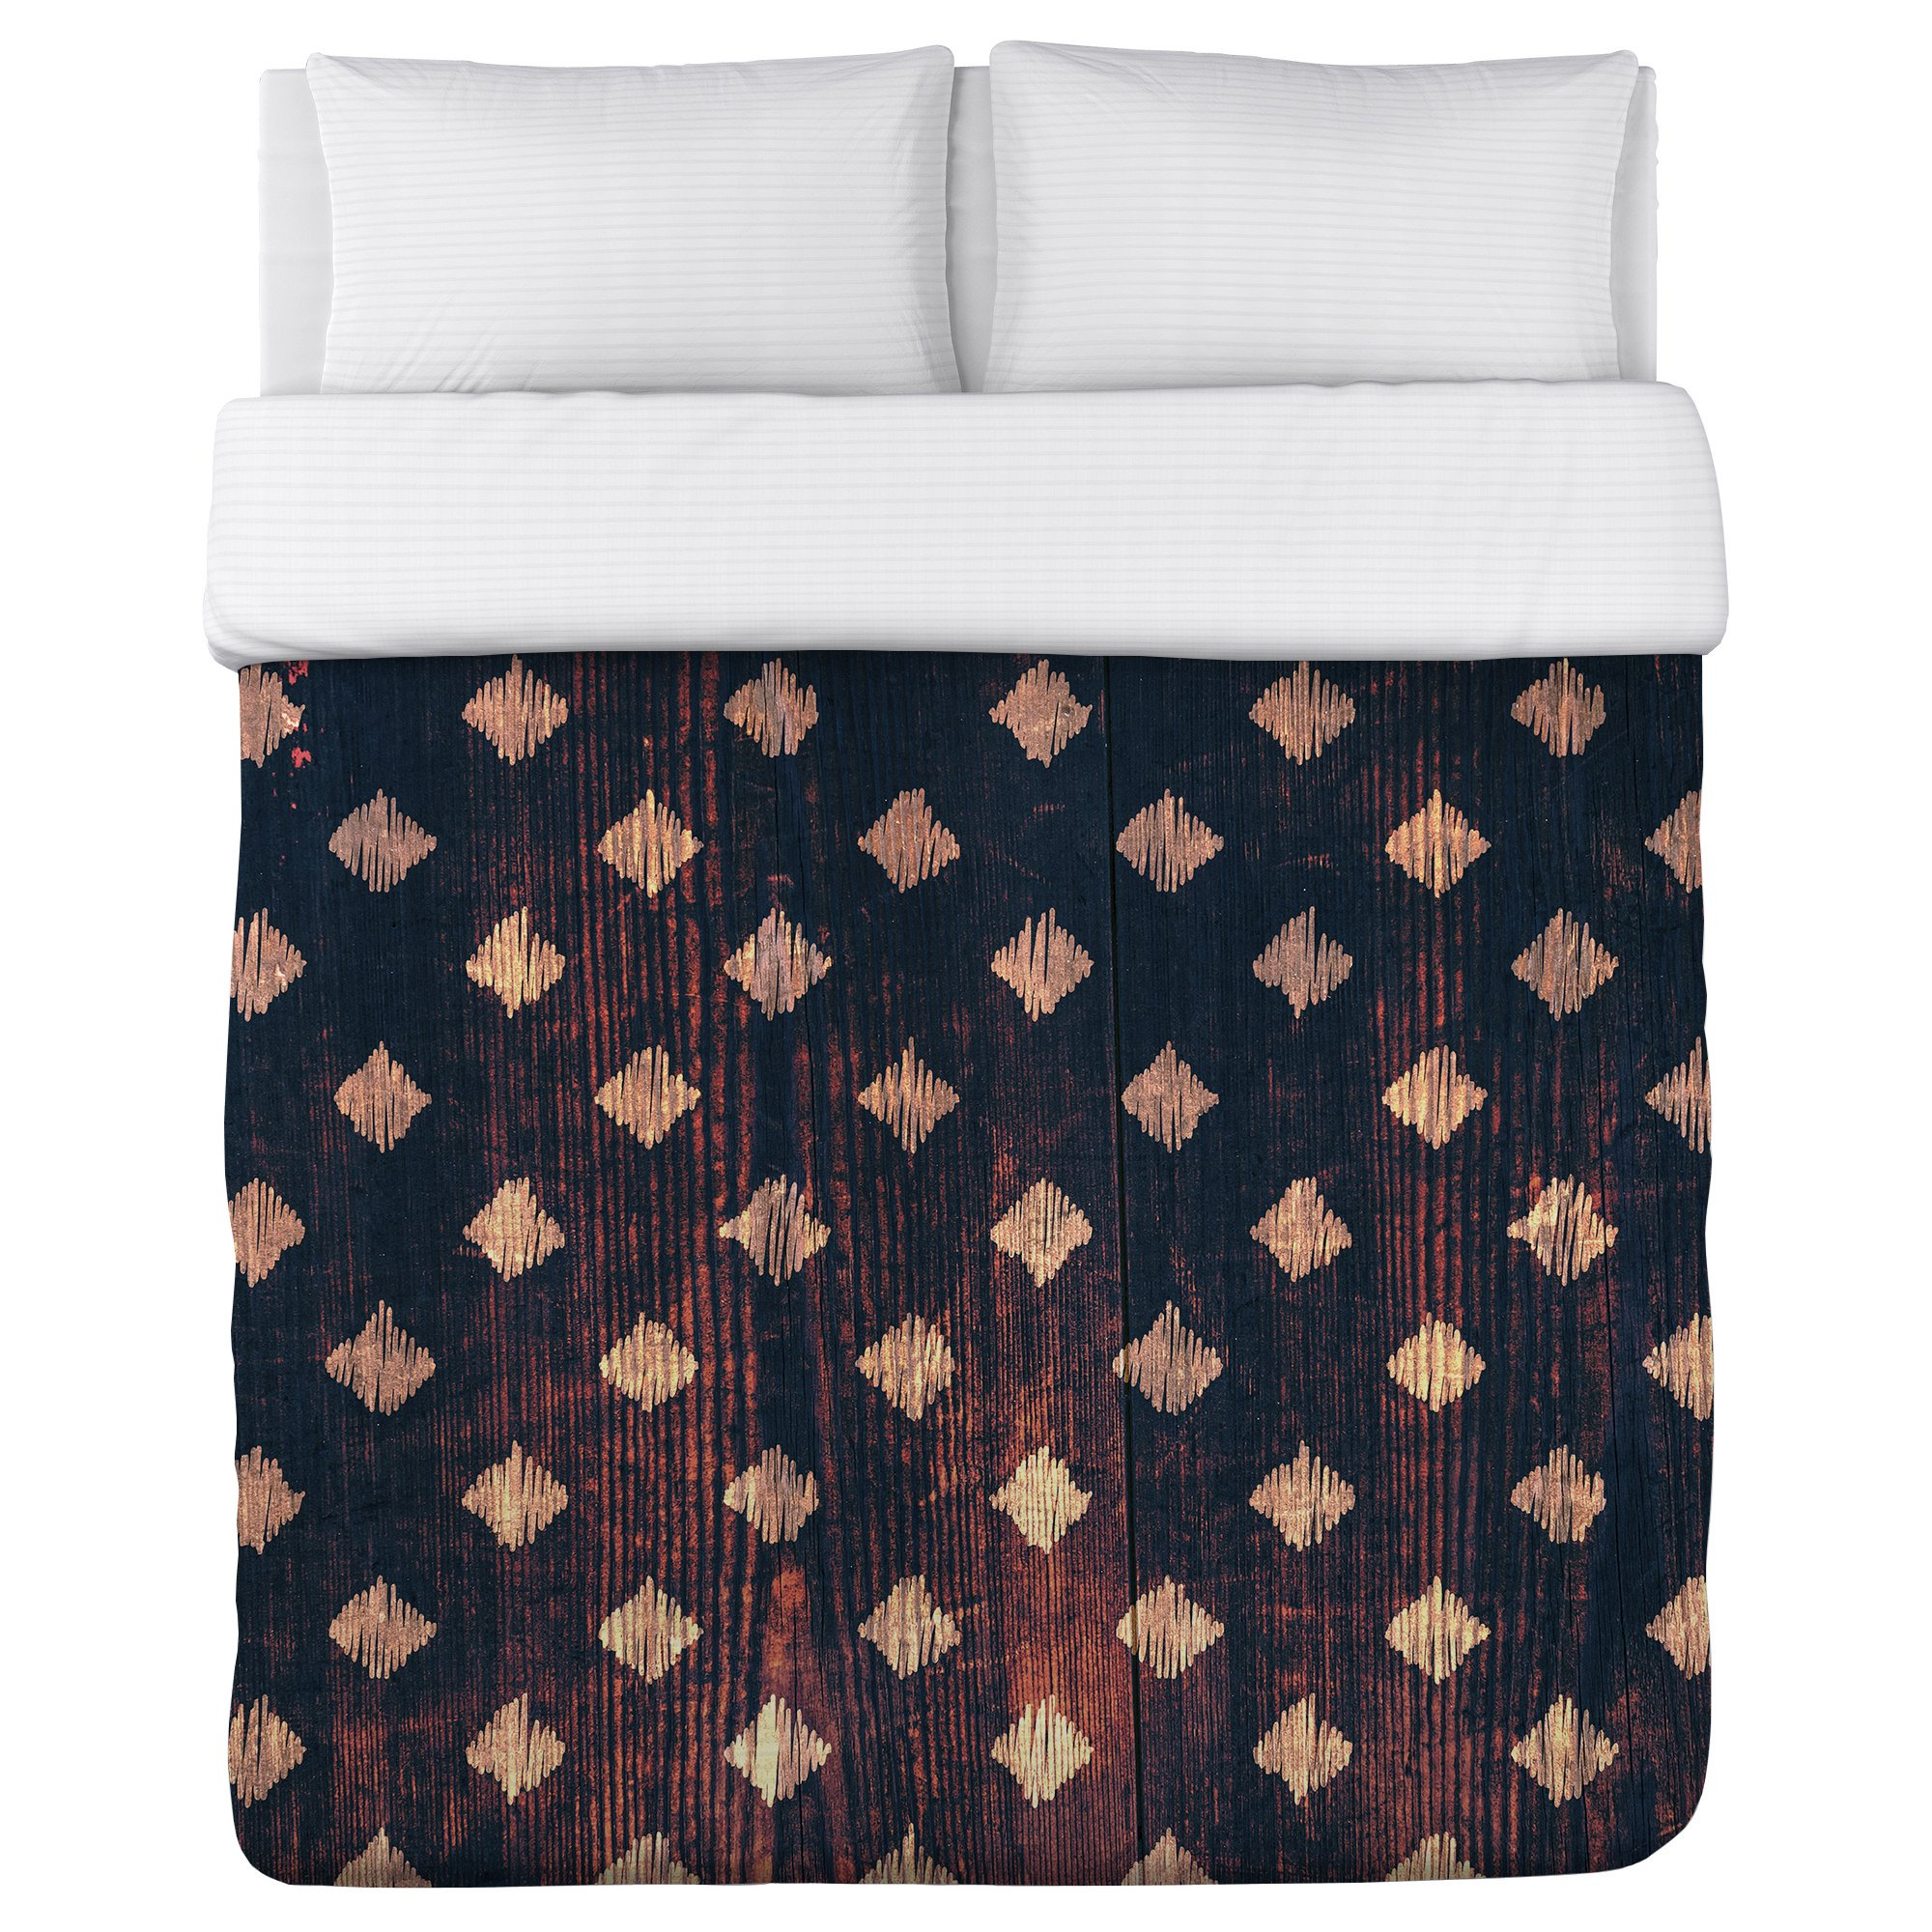 One Bella Casa Scribble Scrabble Wood Duvet Cover by OBC, King, Brown by One Bella Casa (Image #1)